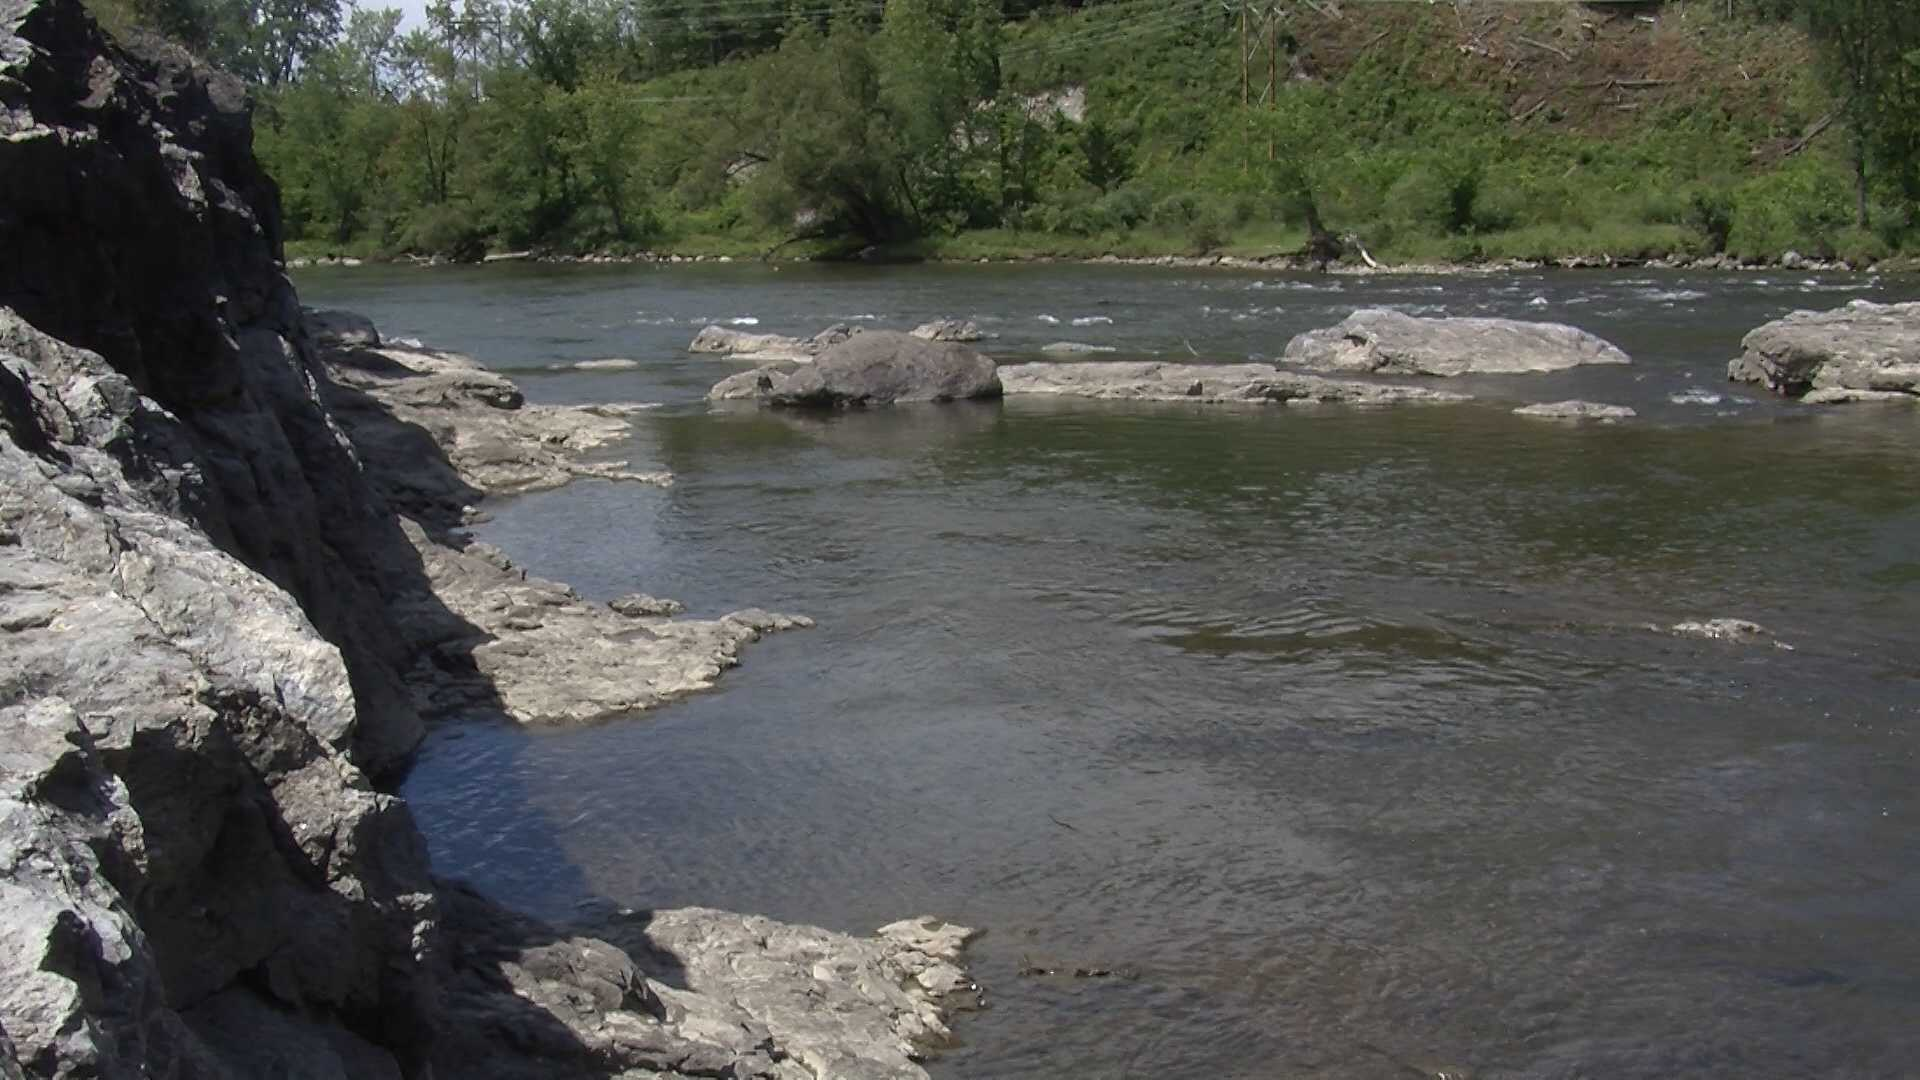 At least 500,000 gallons of partially untreated sewage water ended up in the Winooski River over the weekend -- and there's been dozens of spills like this before.